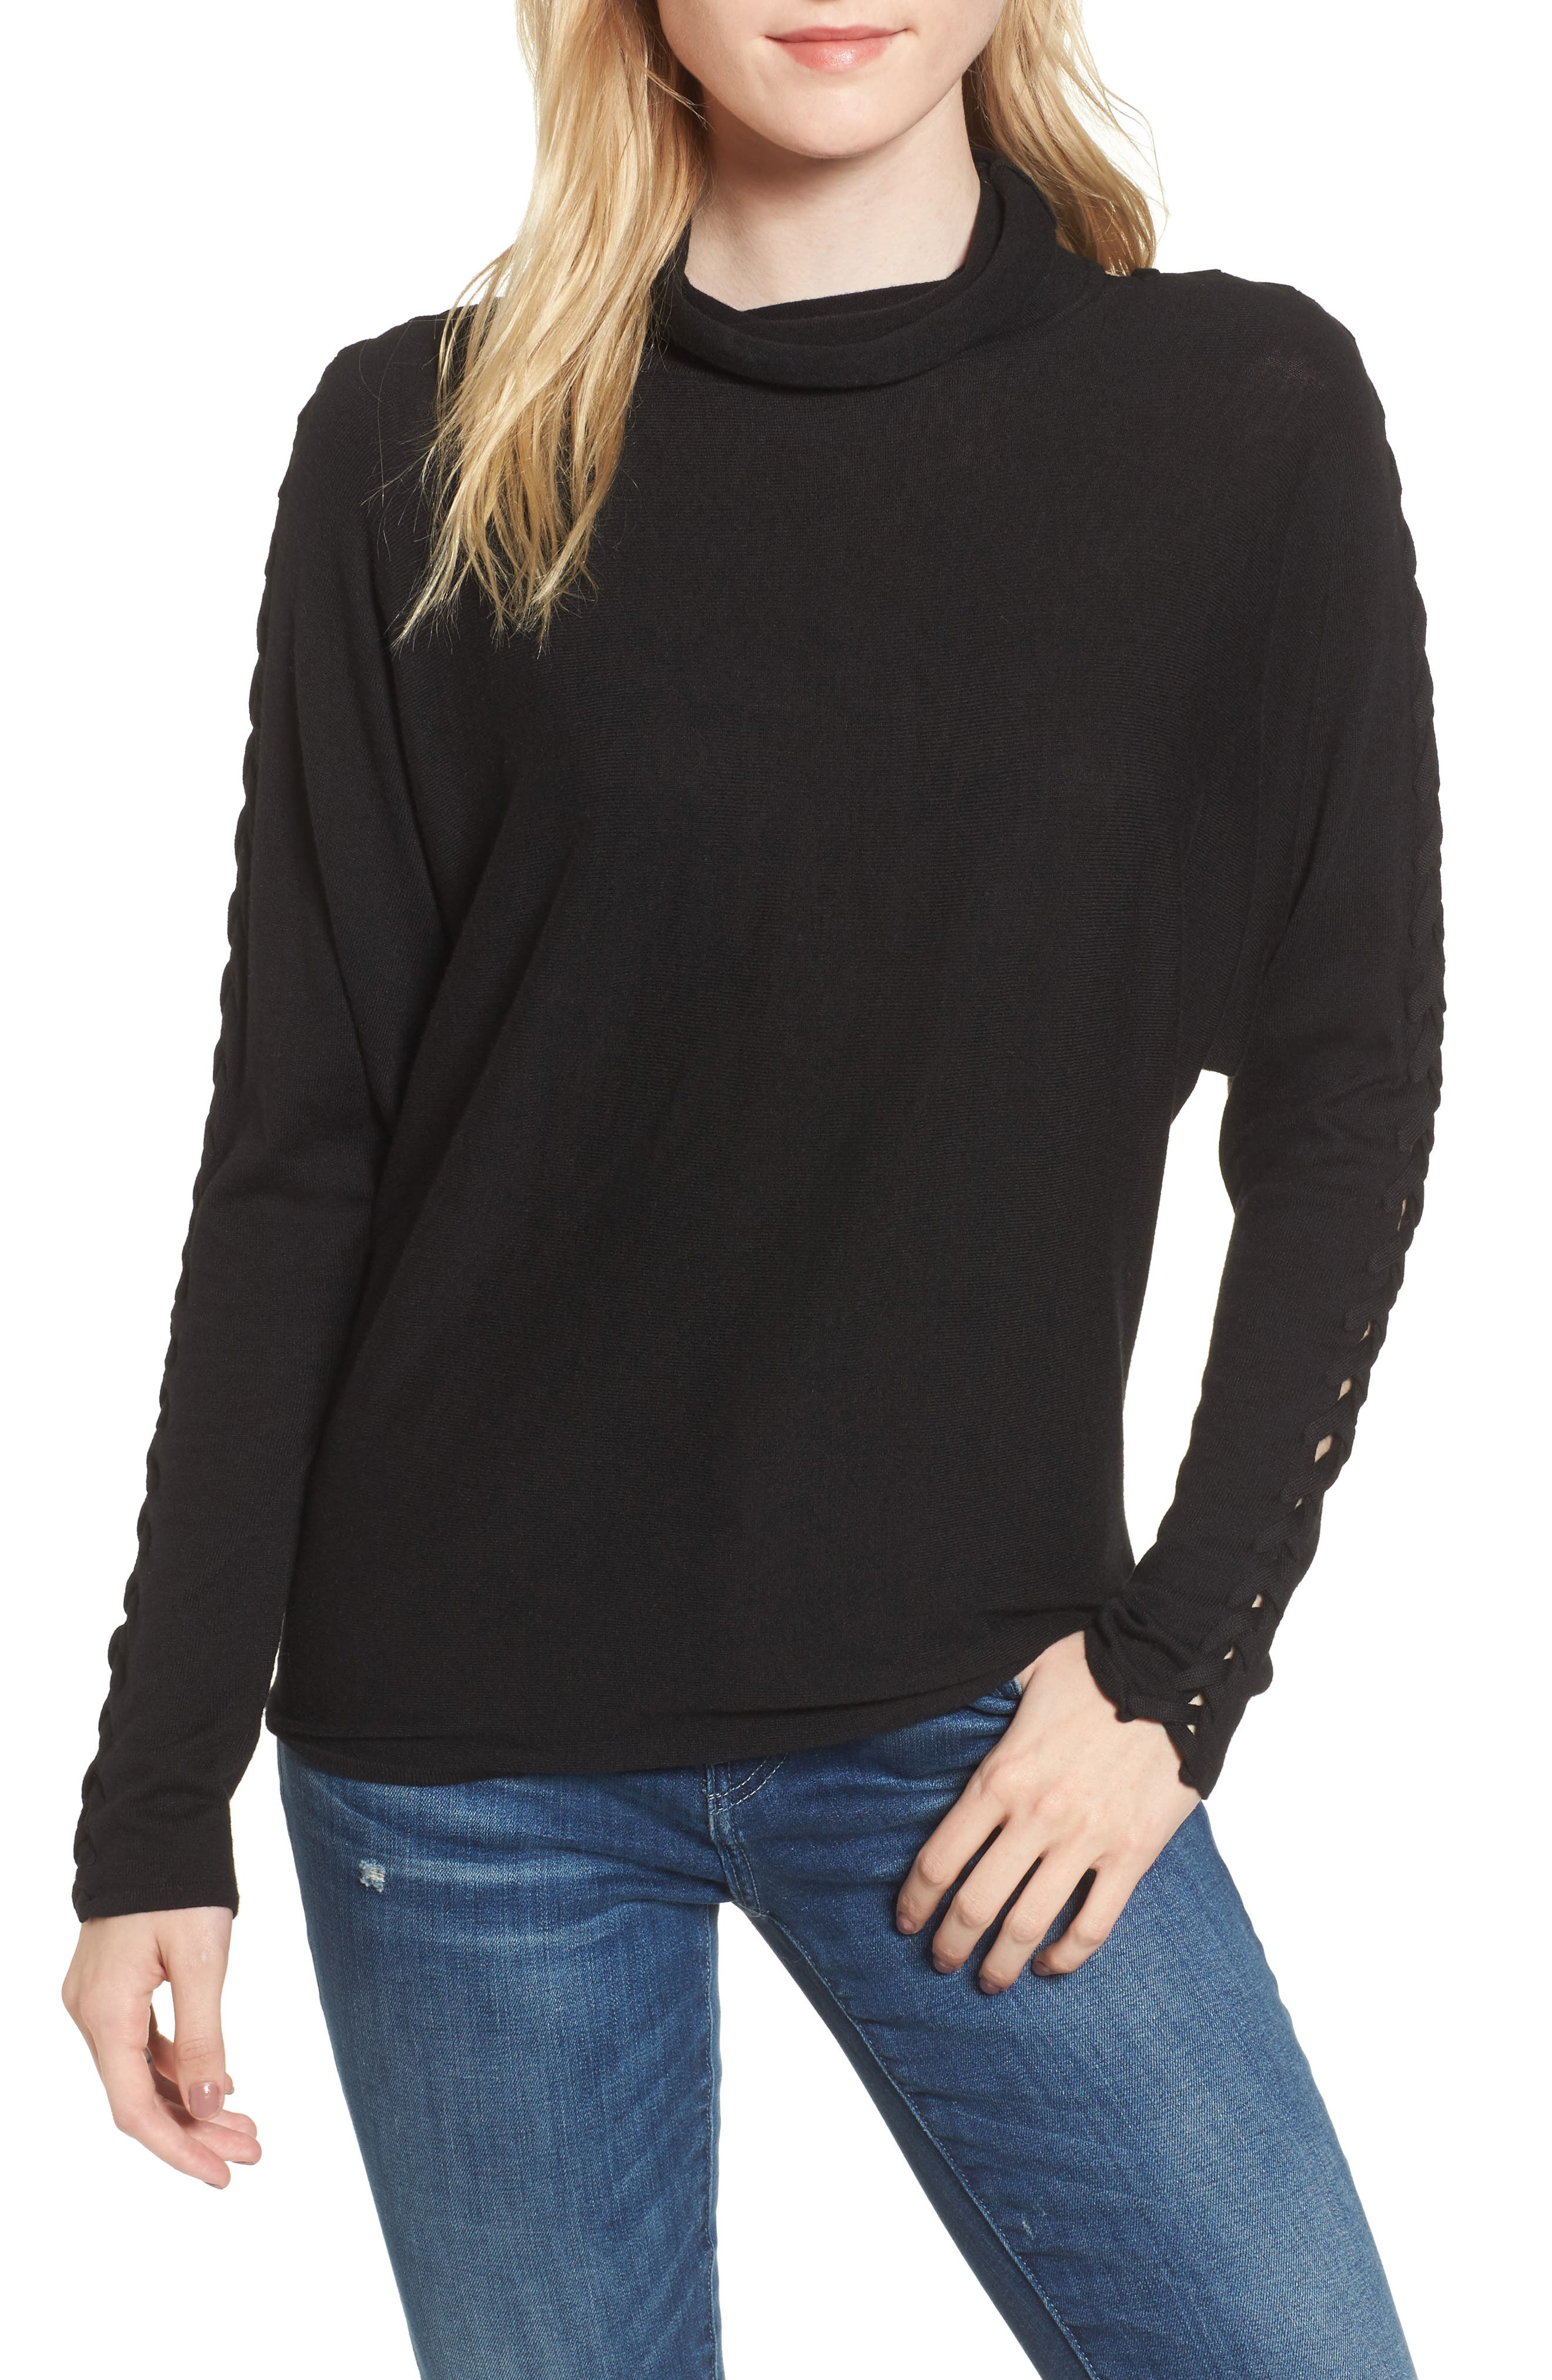 Victoire Turtleneck Sweater,                         Main,                         color,